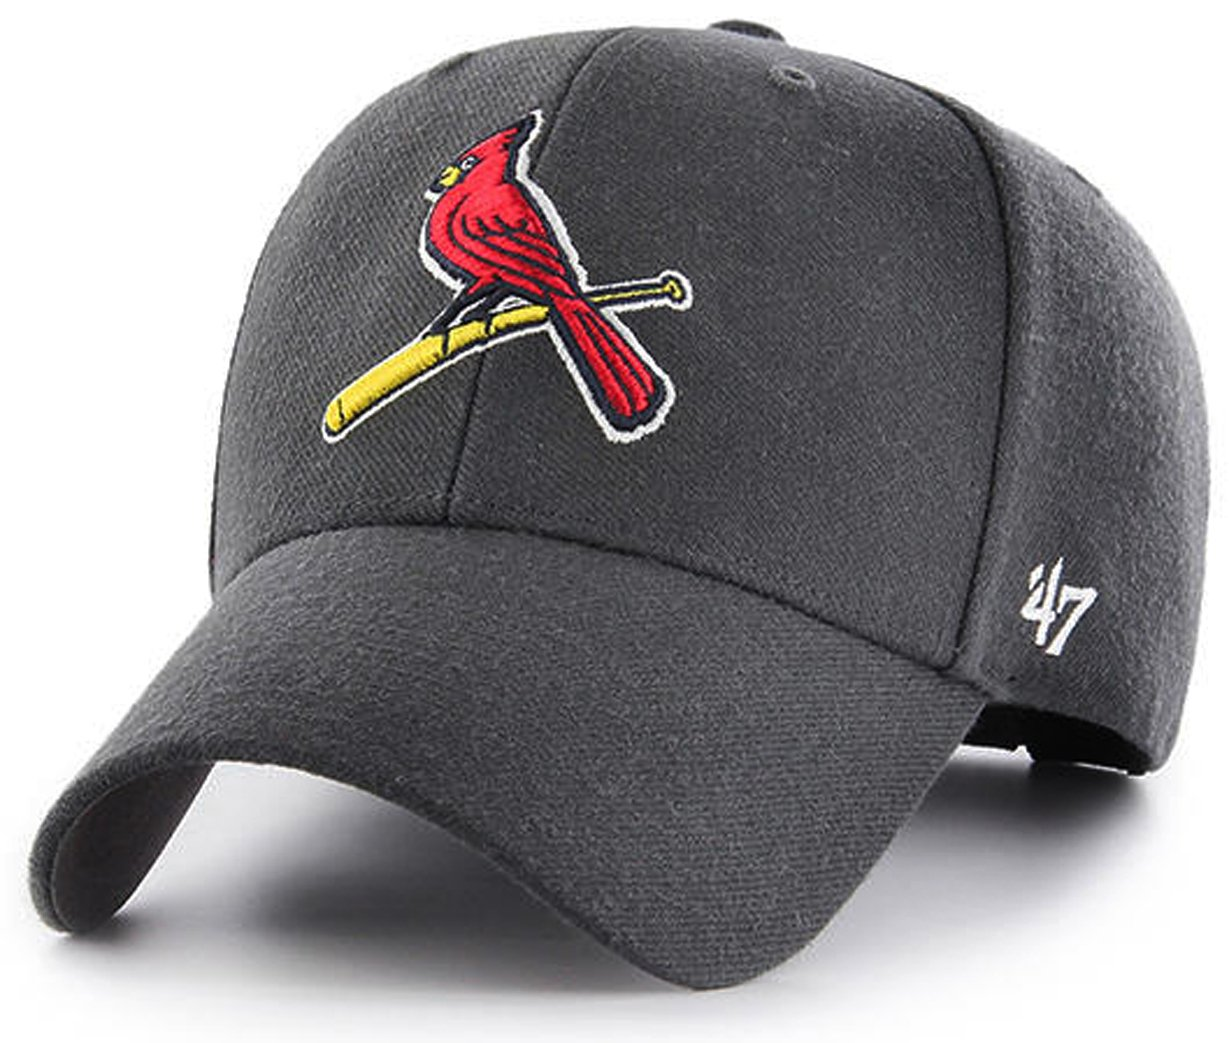 best sneakers df4a8 dae34 Amazon.com   47 Authentic Gray St. Louis Cardinals Cooperstown The Bird  Charcoal MLB Adjustable - MVP  Sports   Outdoors